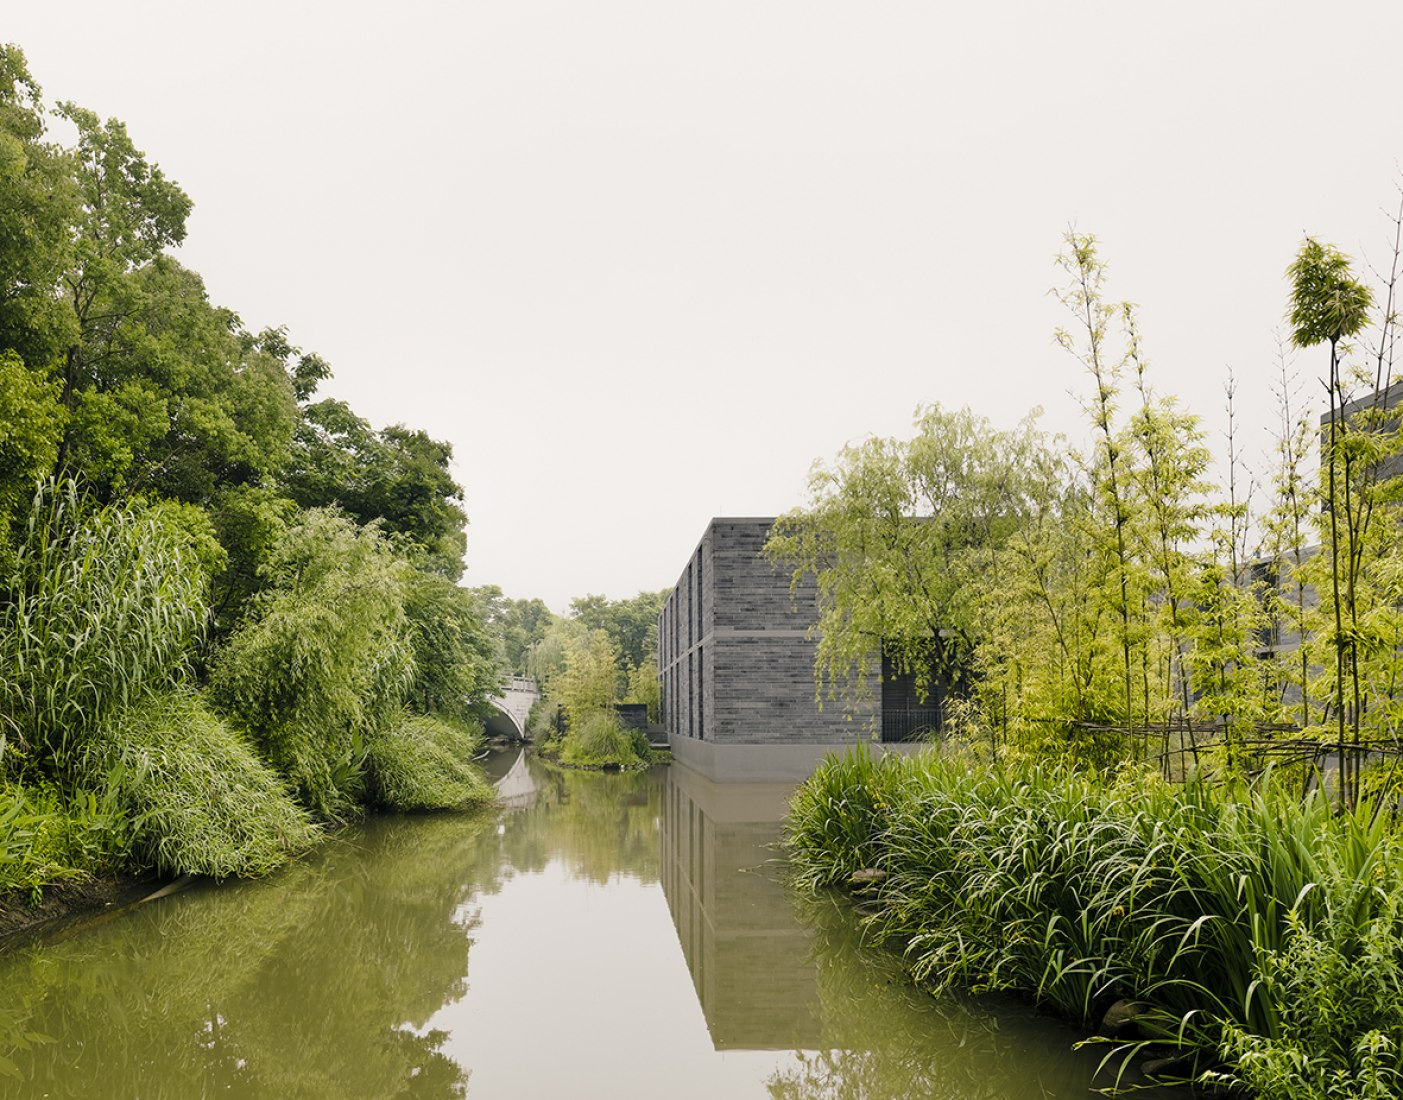 Exterior. Xixi Wetland Estate by David Chipperfield Architects. Photography © Simon Menges.